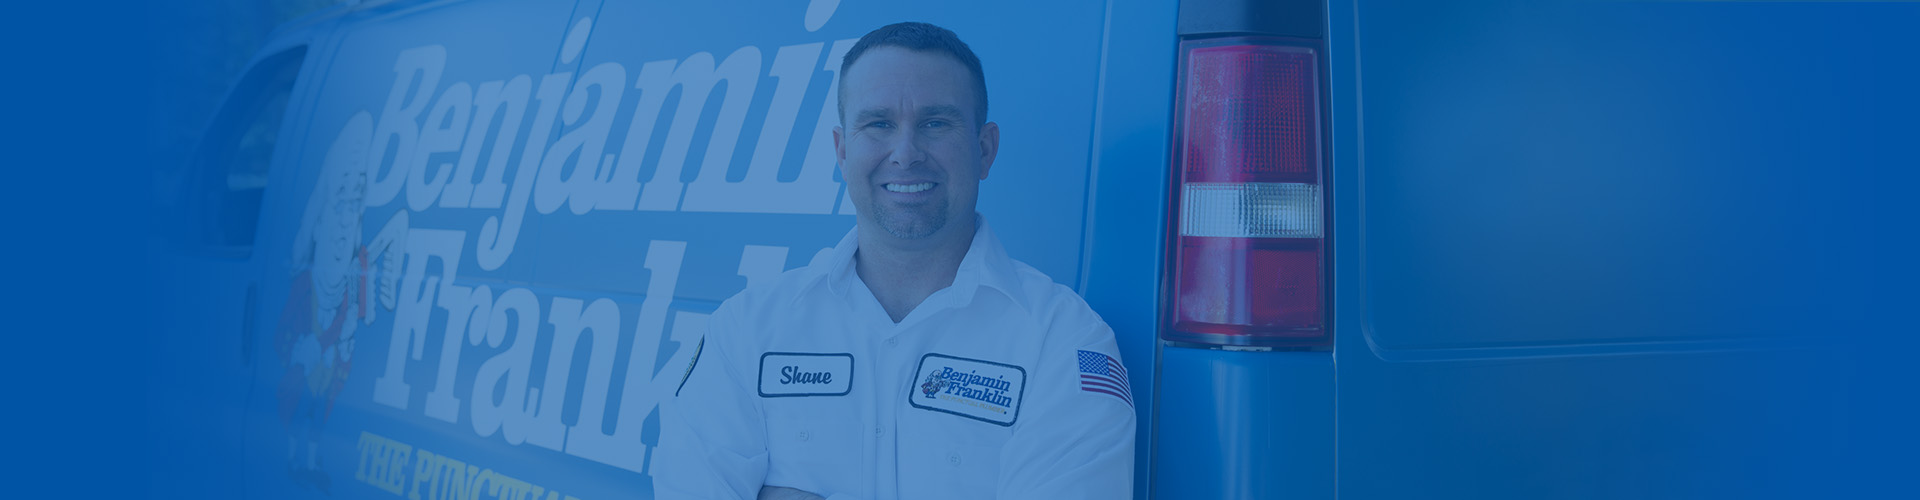 Ben Franklin Duncanville Plumbing Tech ready to help any plumbing issue.